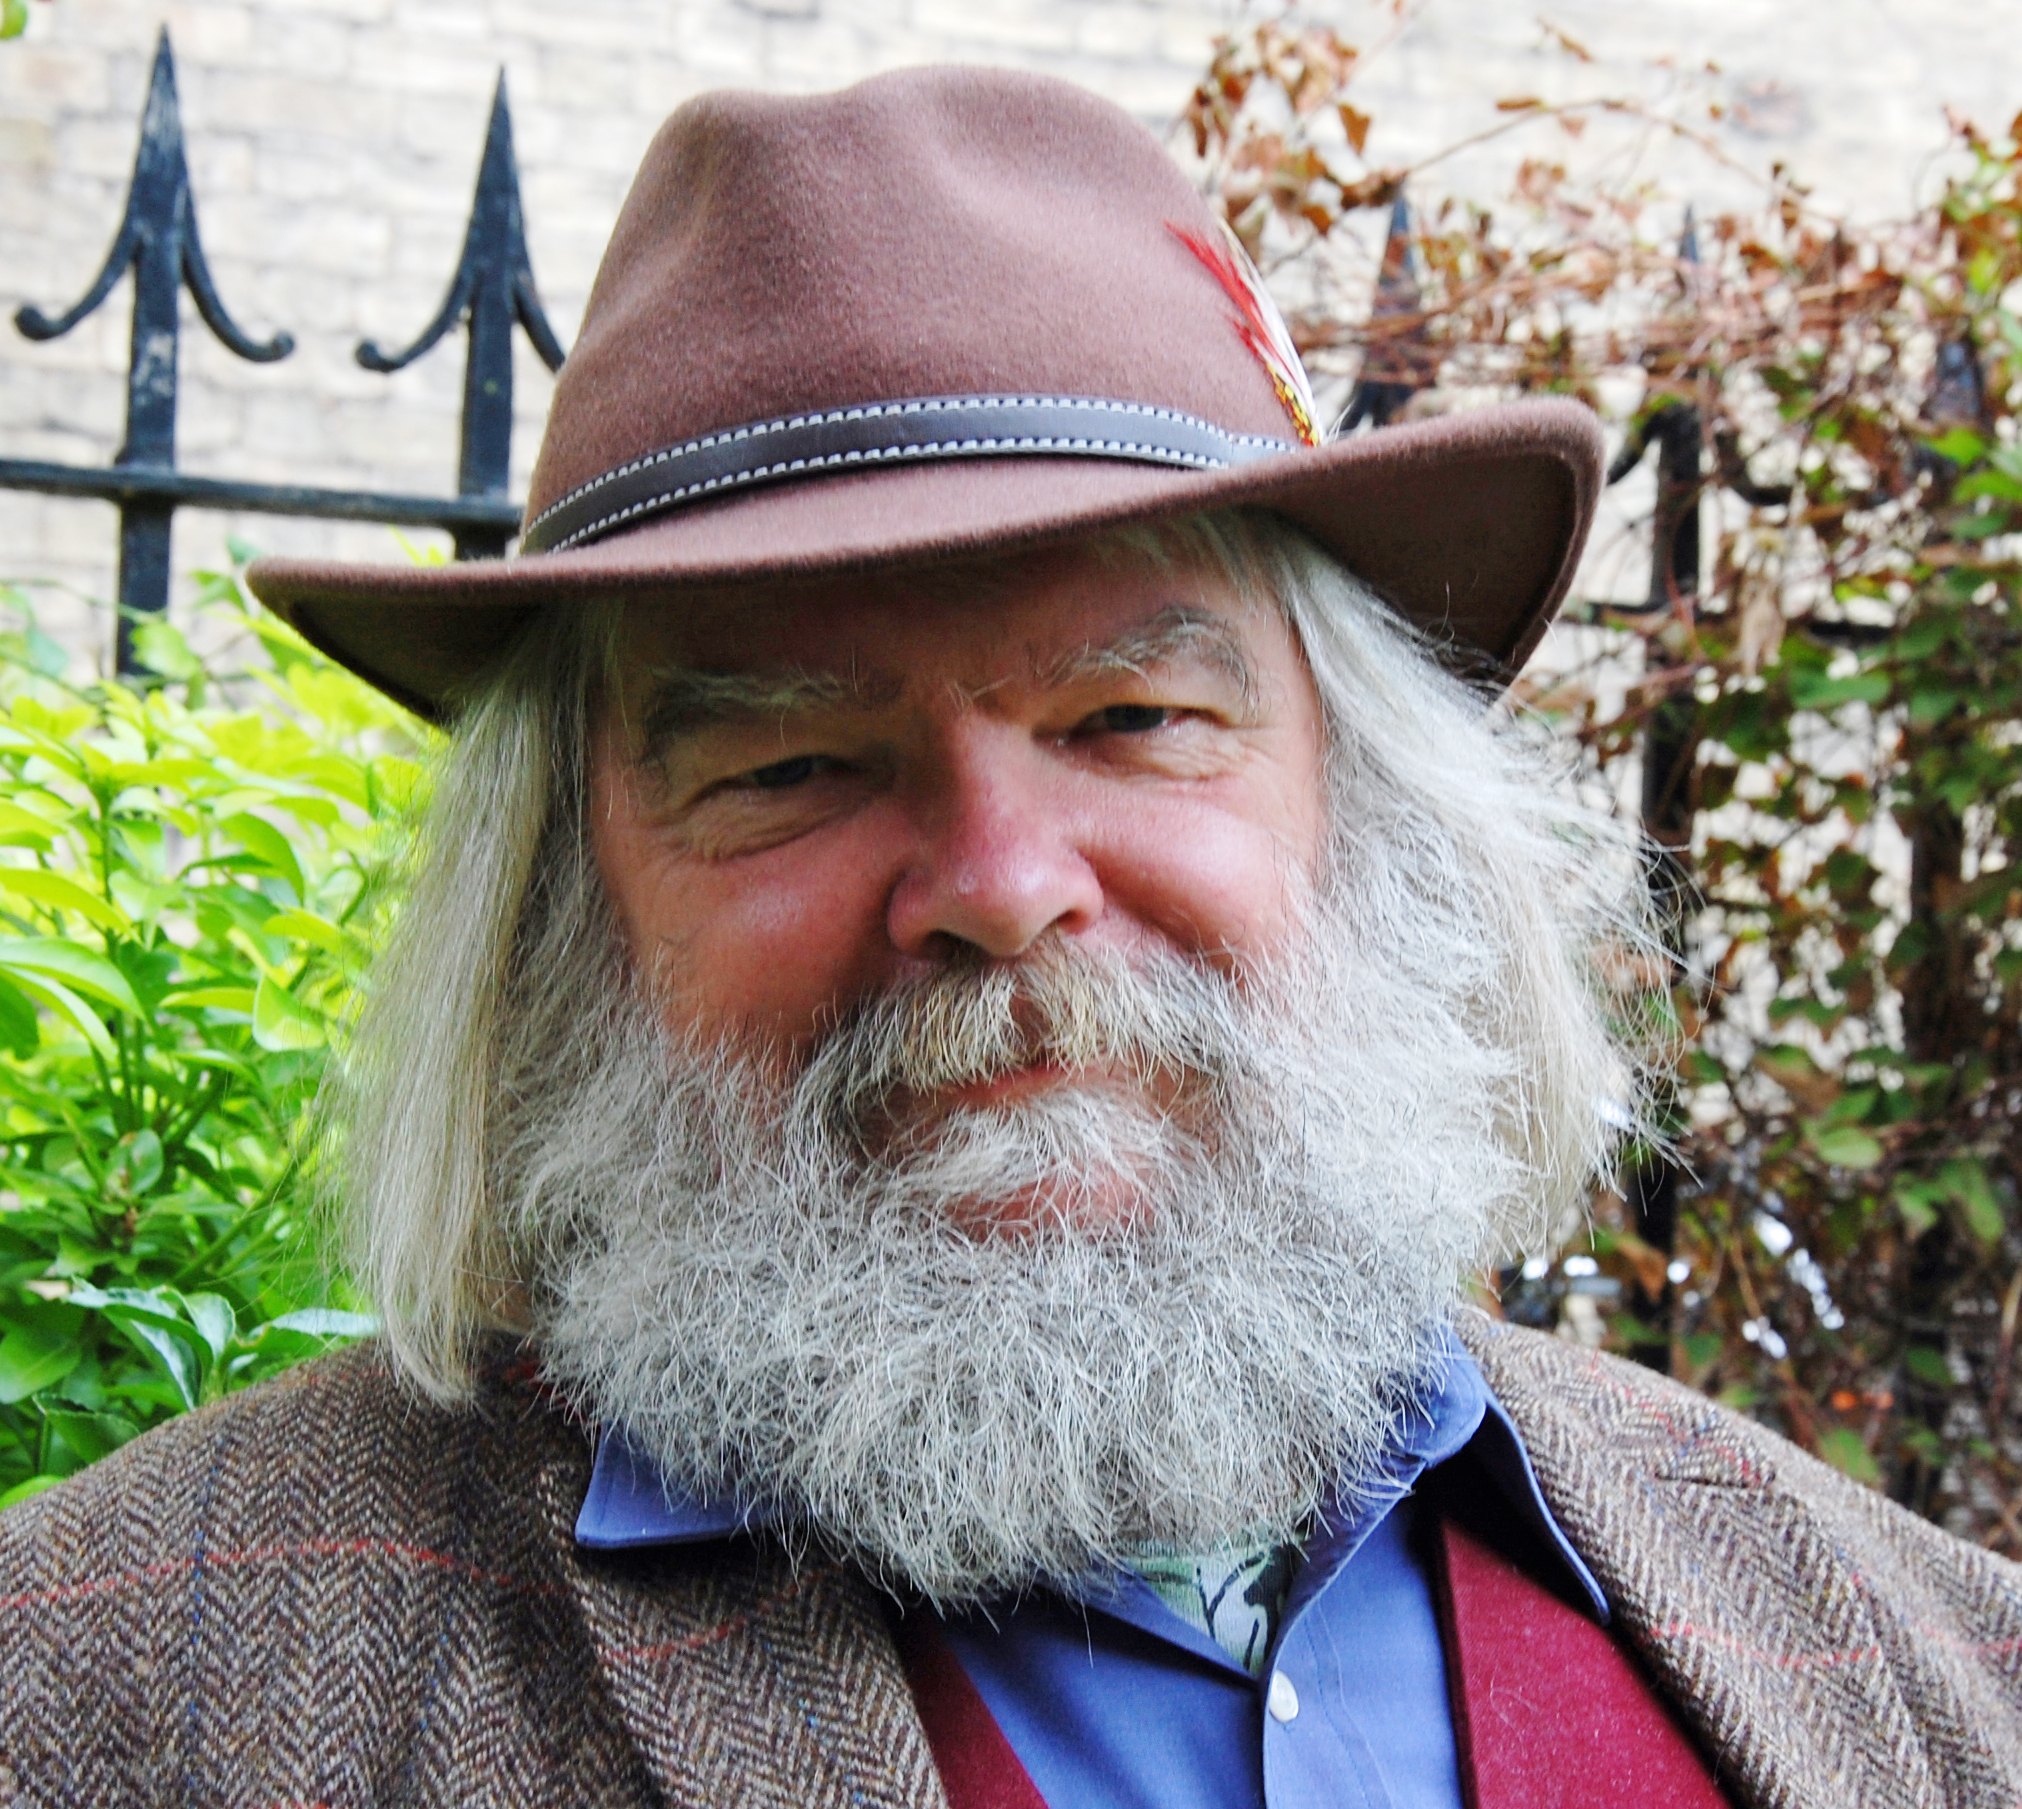 TUESDAY 27TH March 2.30 – 3.30PM - An afternoon of poetry and music with poet and singer – songwriter Malcolm Guite. Malcolm will be reading from his collections Sounding the Seasons and The Singing Bowl and singing songs from 'The Green Man and other songs' as well as sharing some new material.https://malcolmguite.wordpress.com